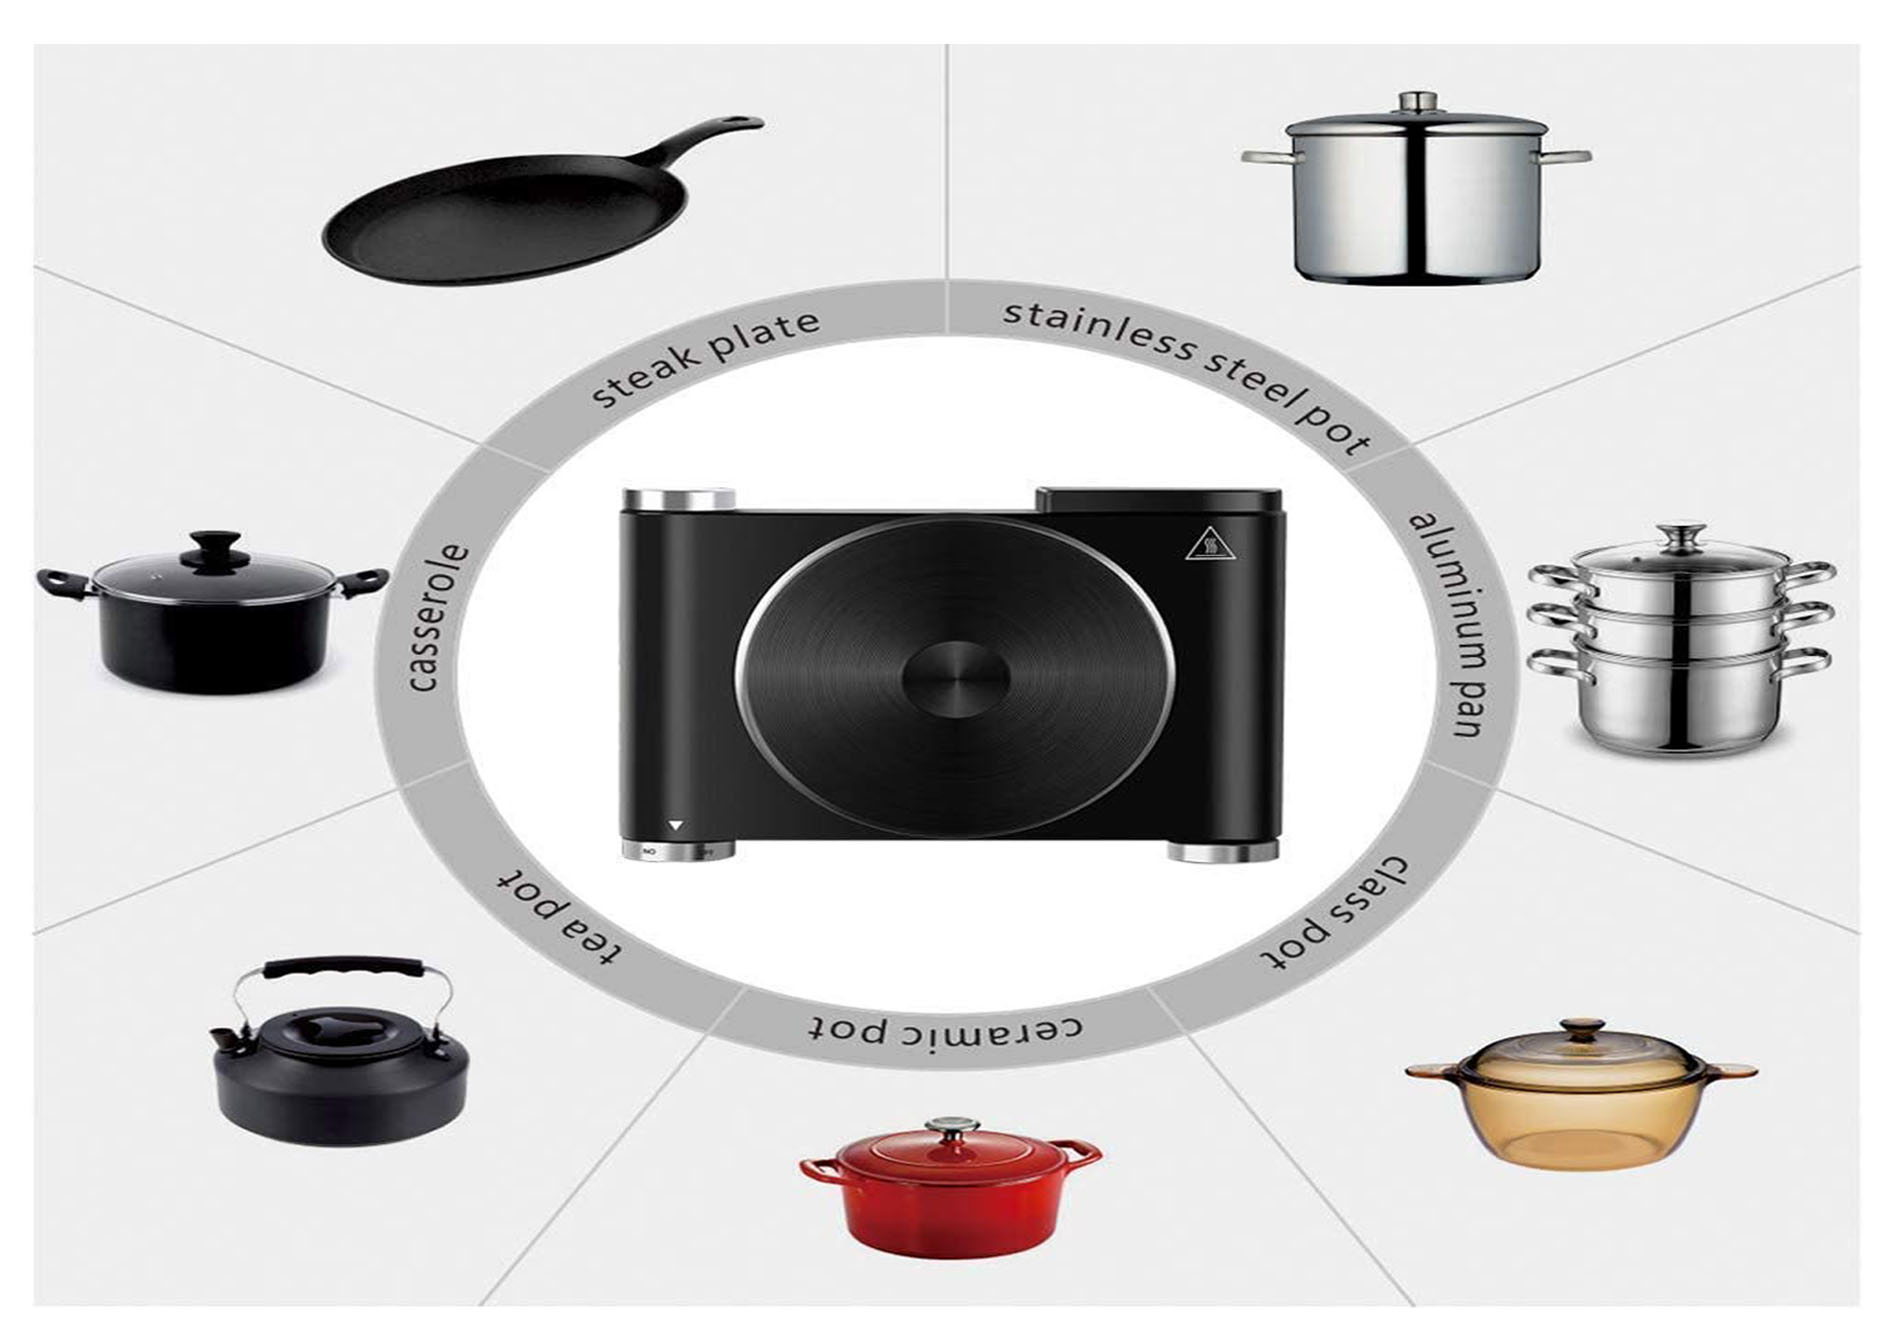 How to Clean Electric Cooktop